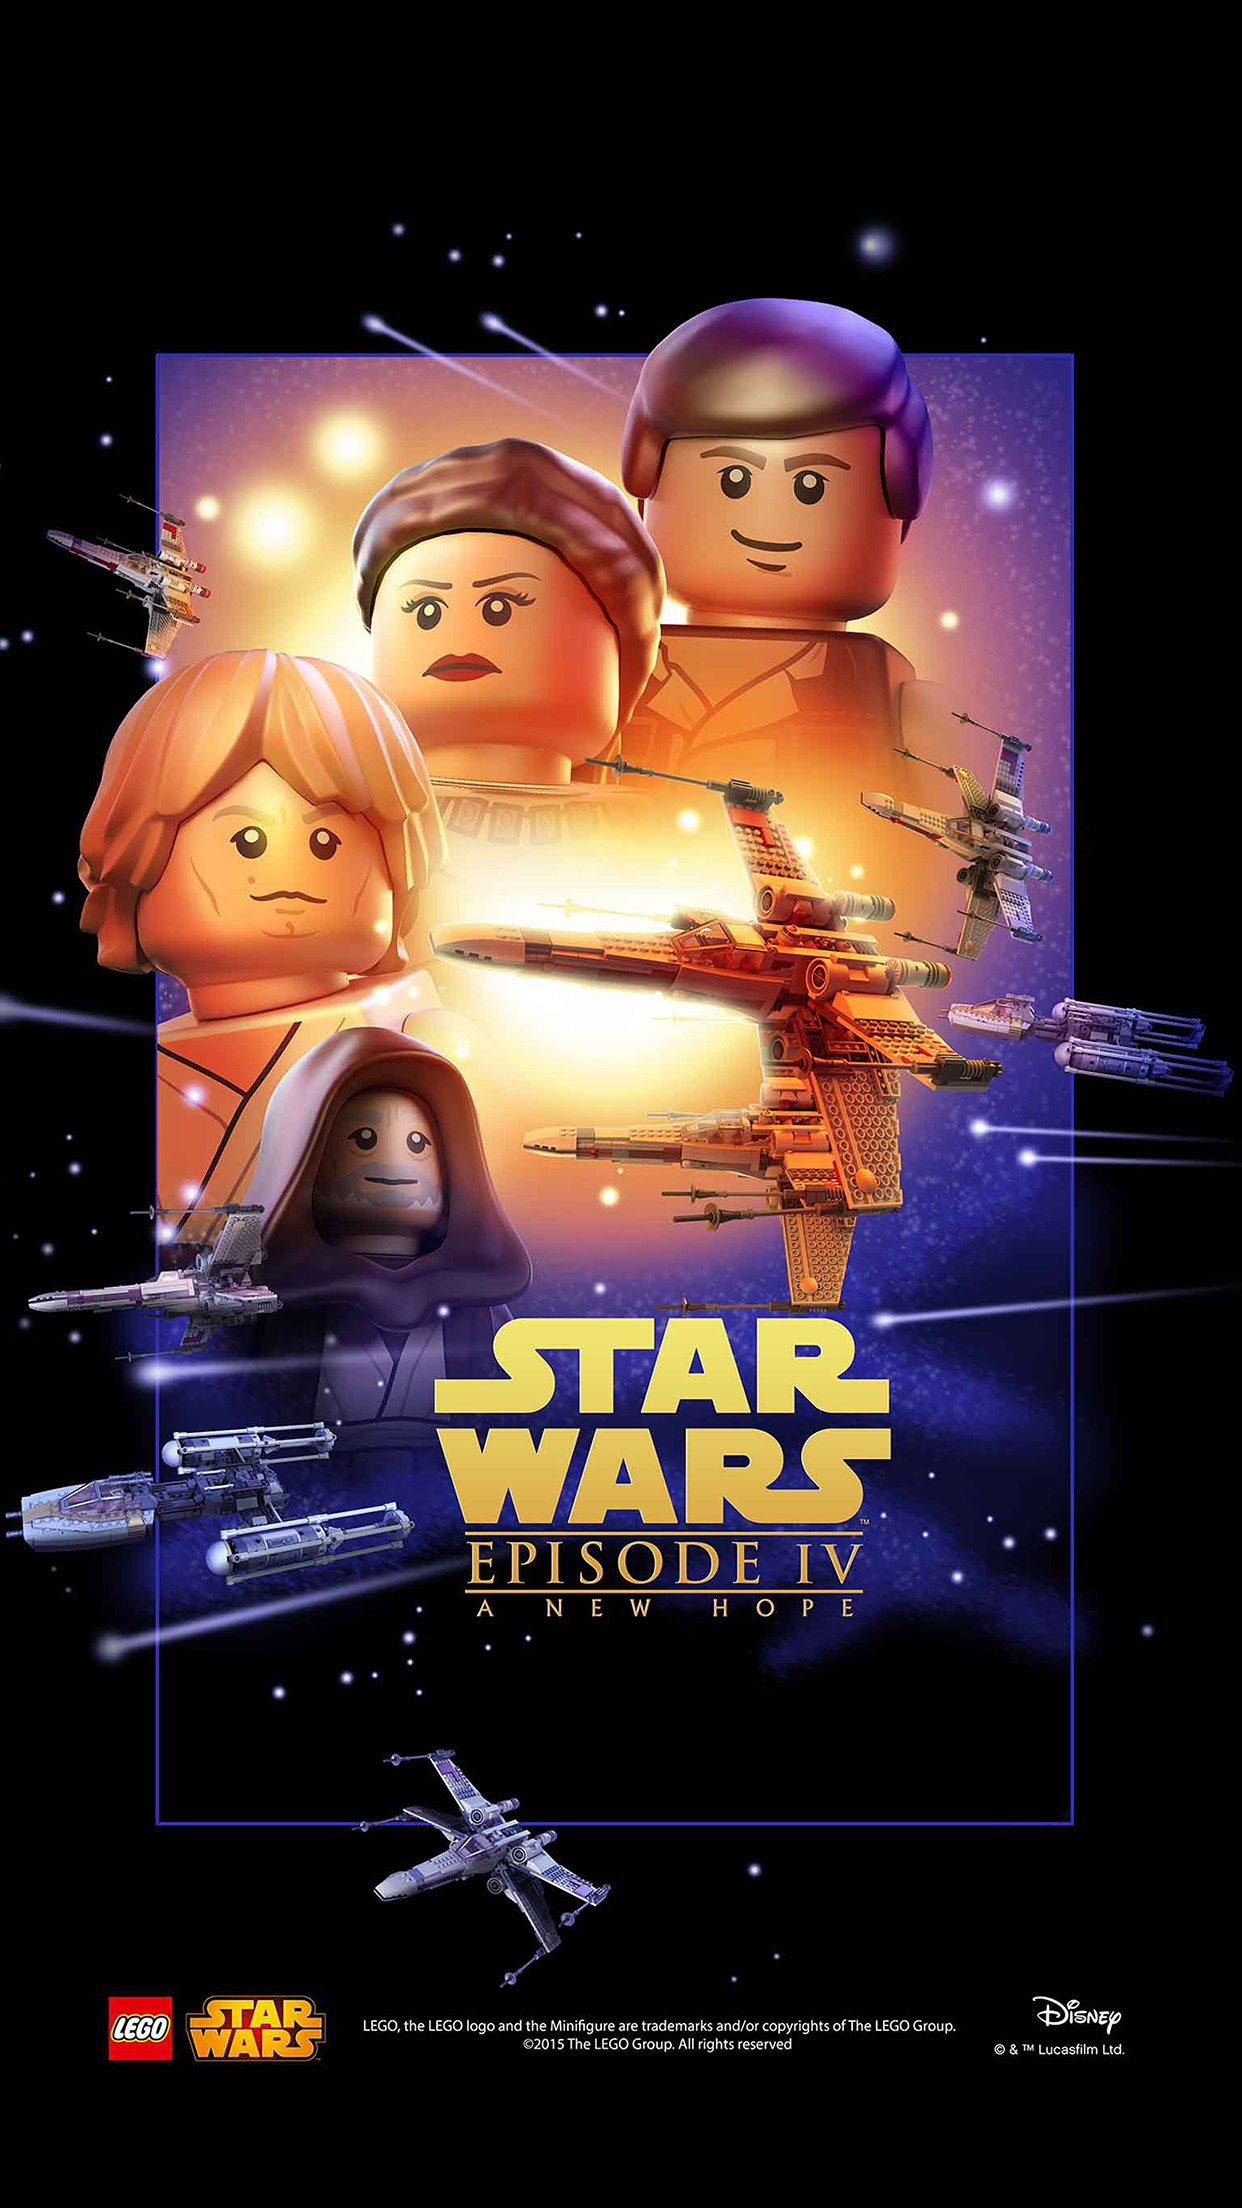 Starwars Lego Episode 4 New Hope Art Film Android wallpaper